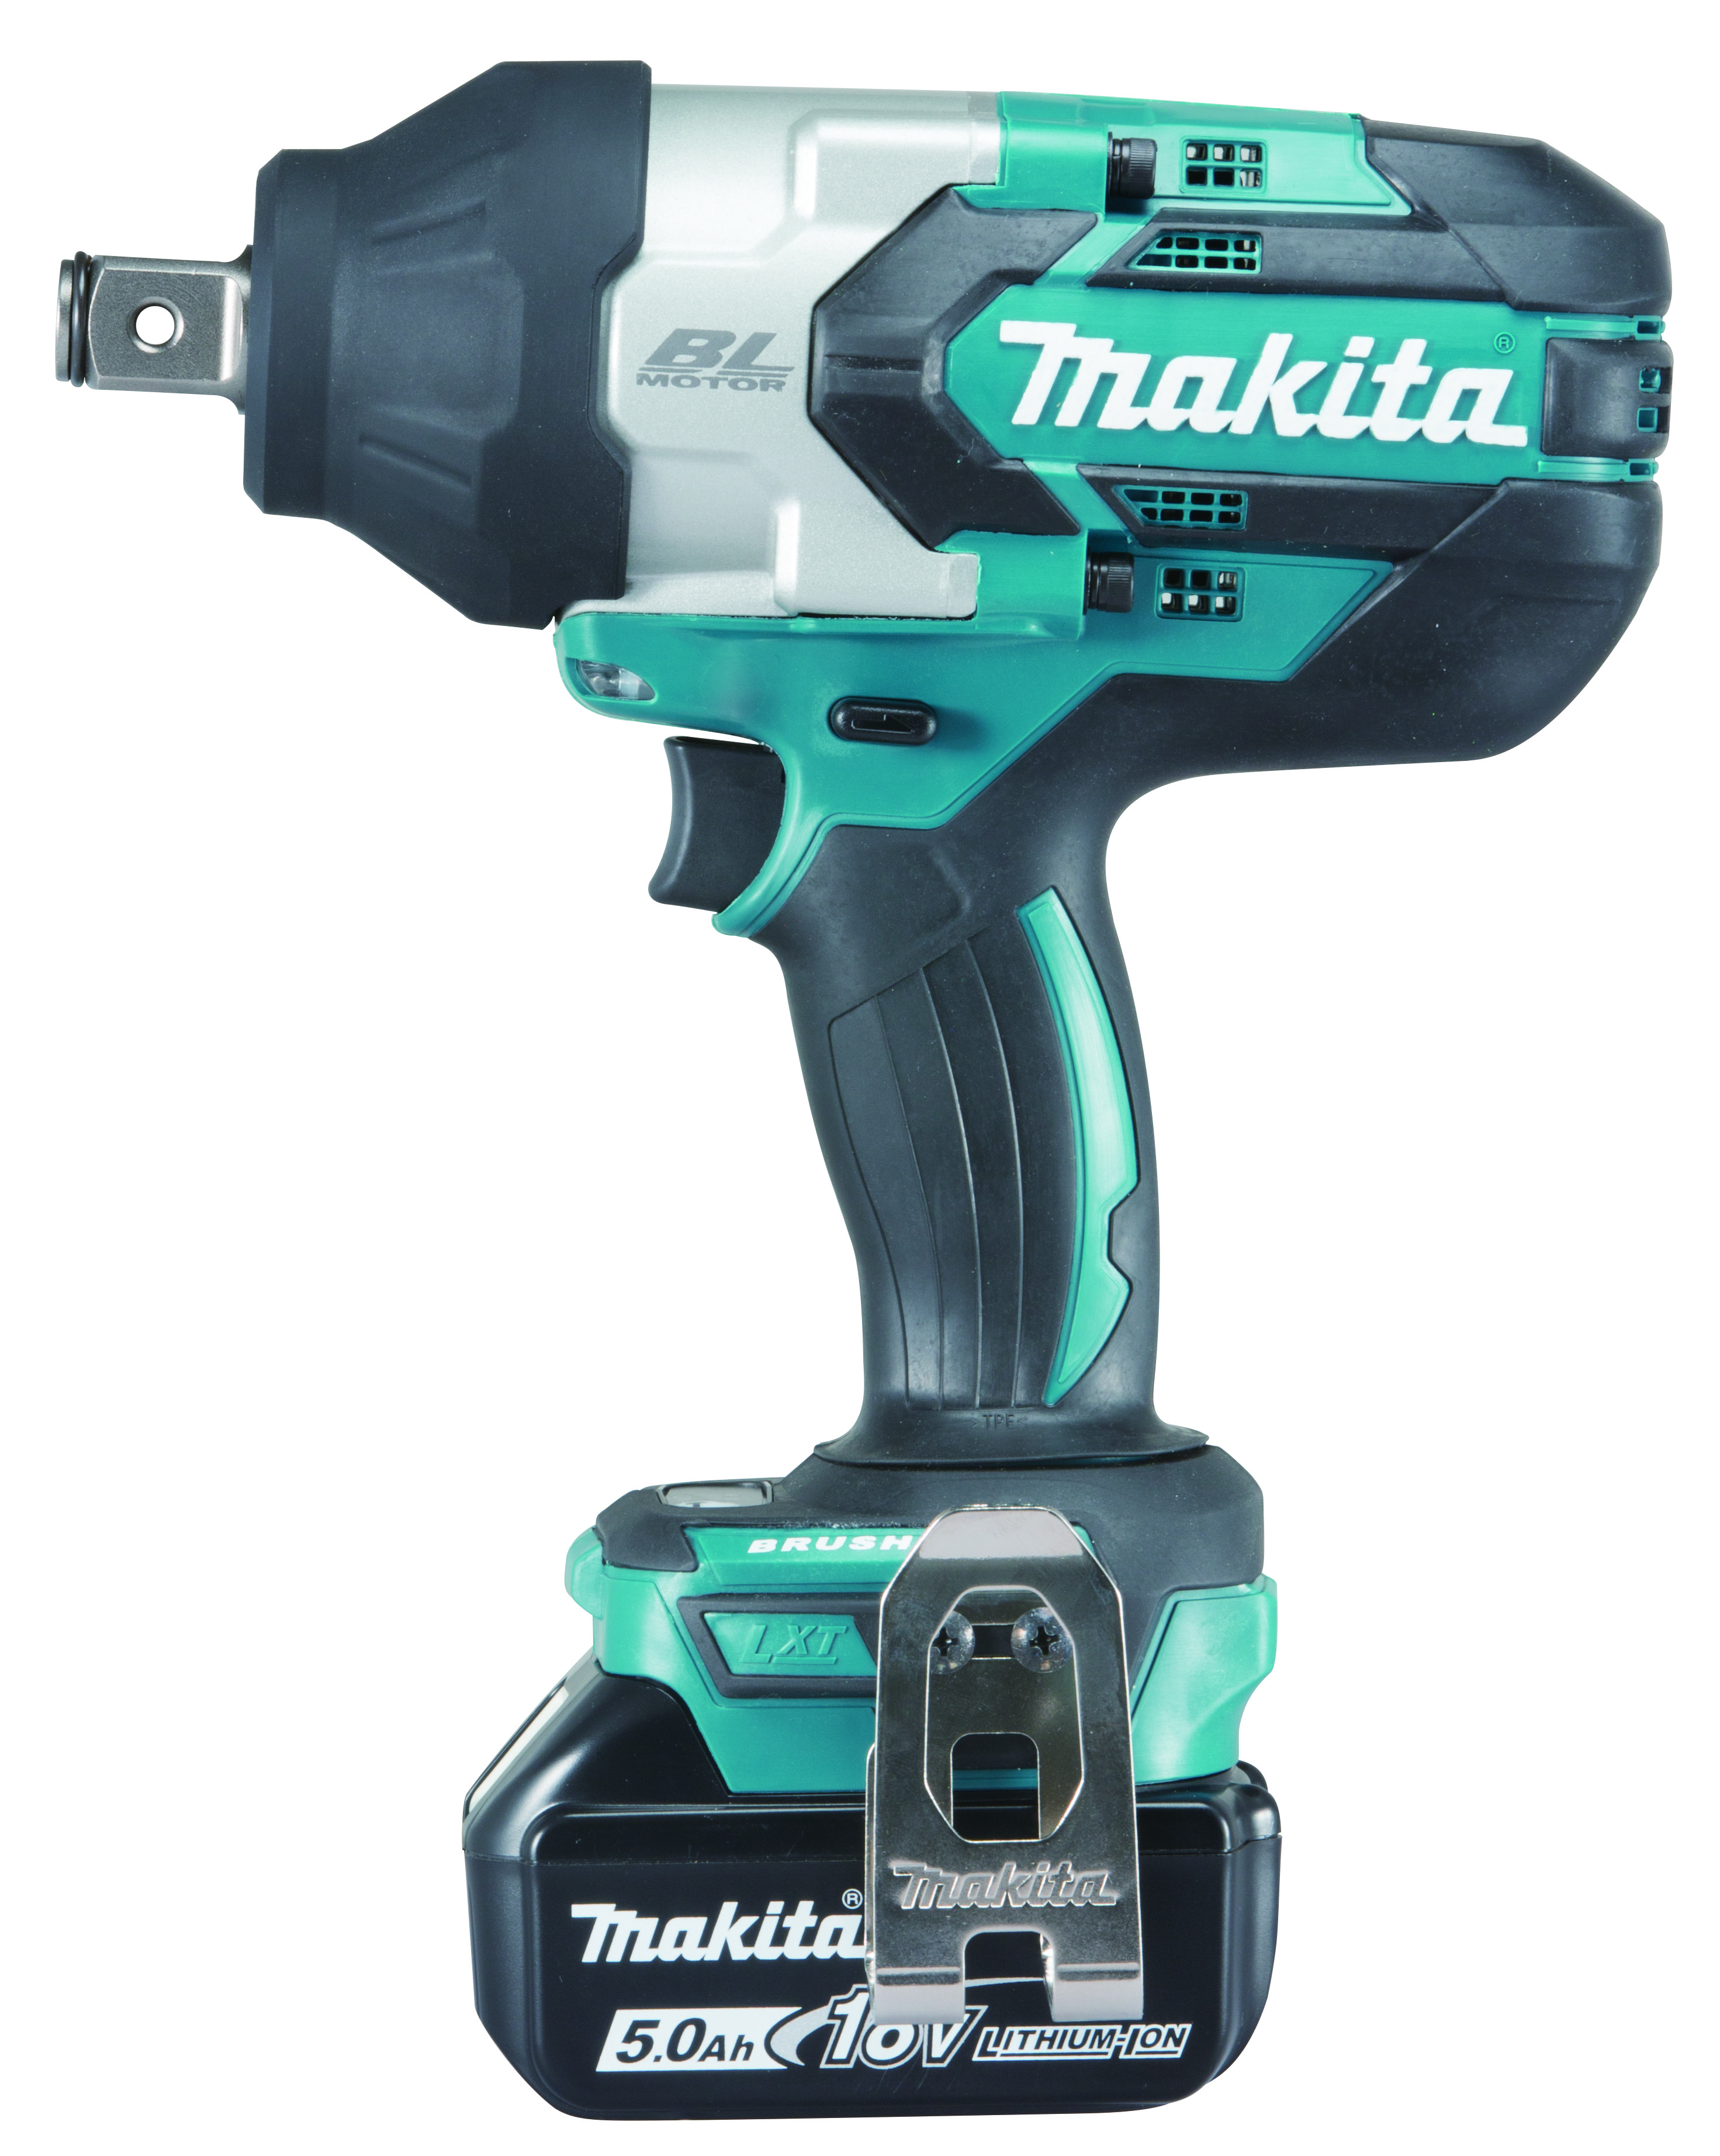 Makita Power Tools South Africa 18v Cordless Brushless